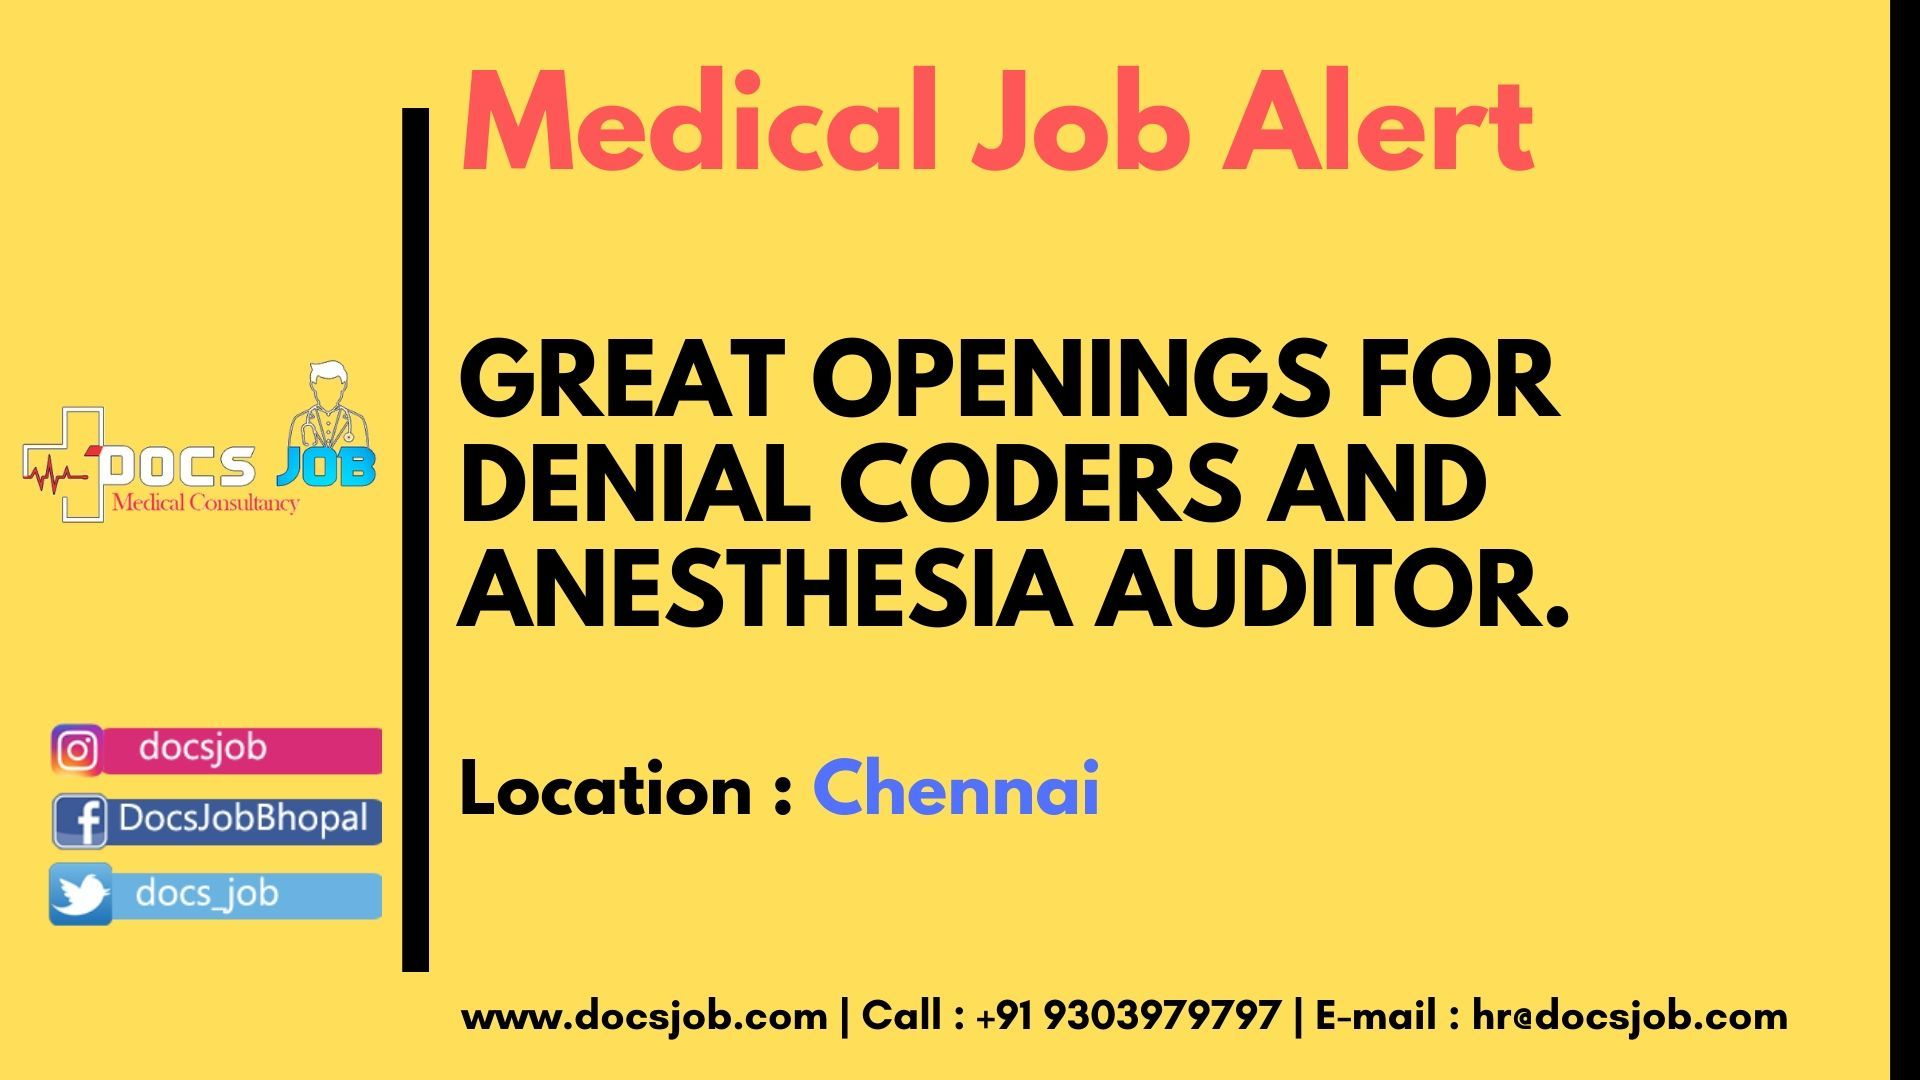 Great Openings for Denial coders and Anesthesia Auditor